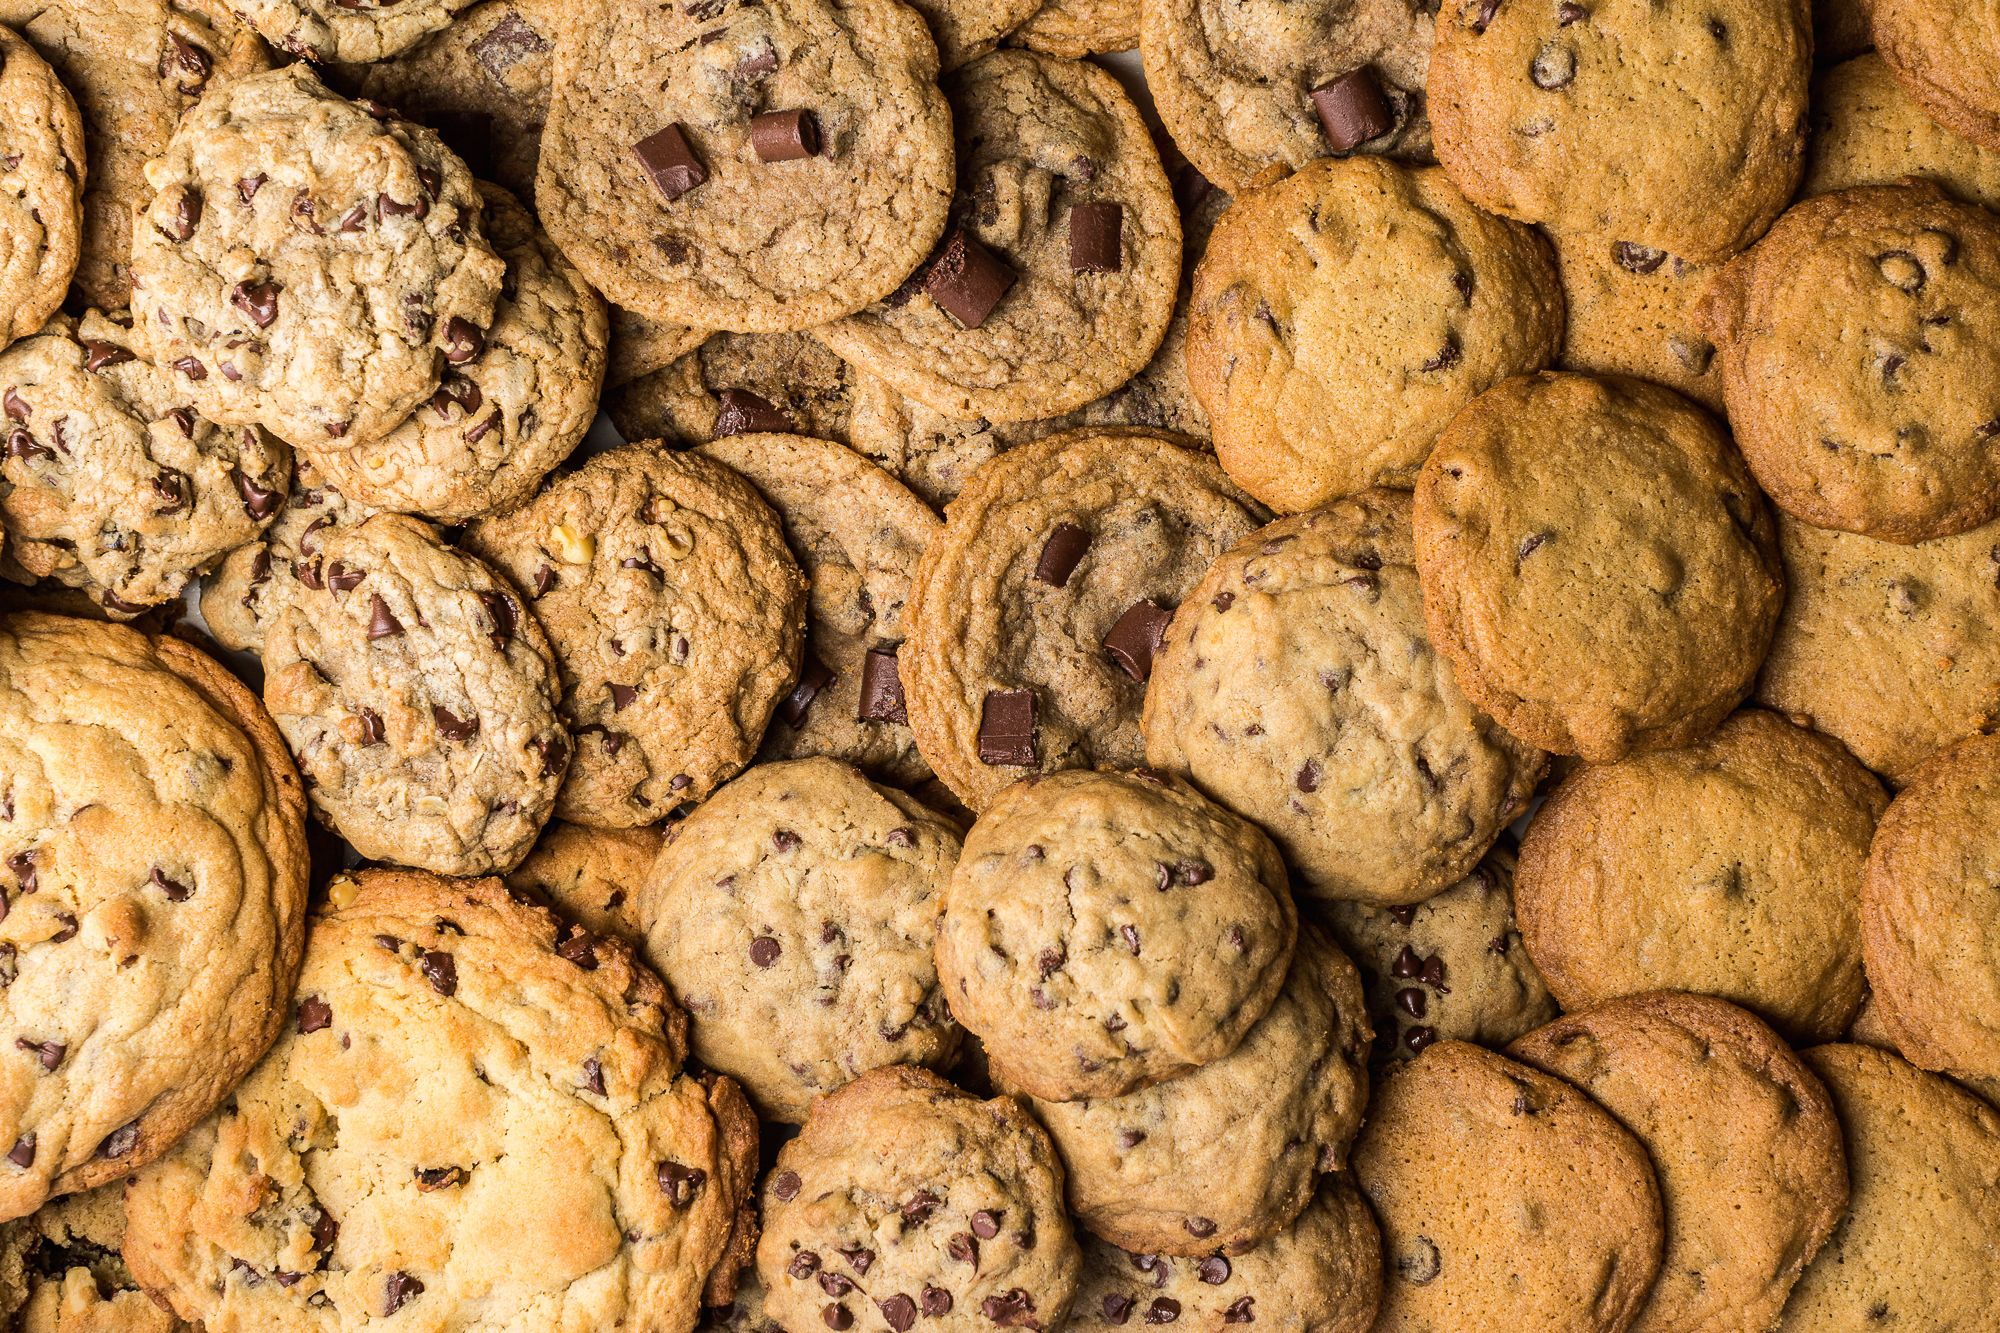 Copycat Chocolate Chip Cookie Recipes